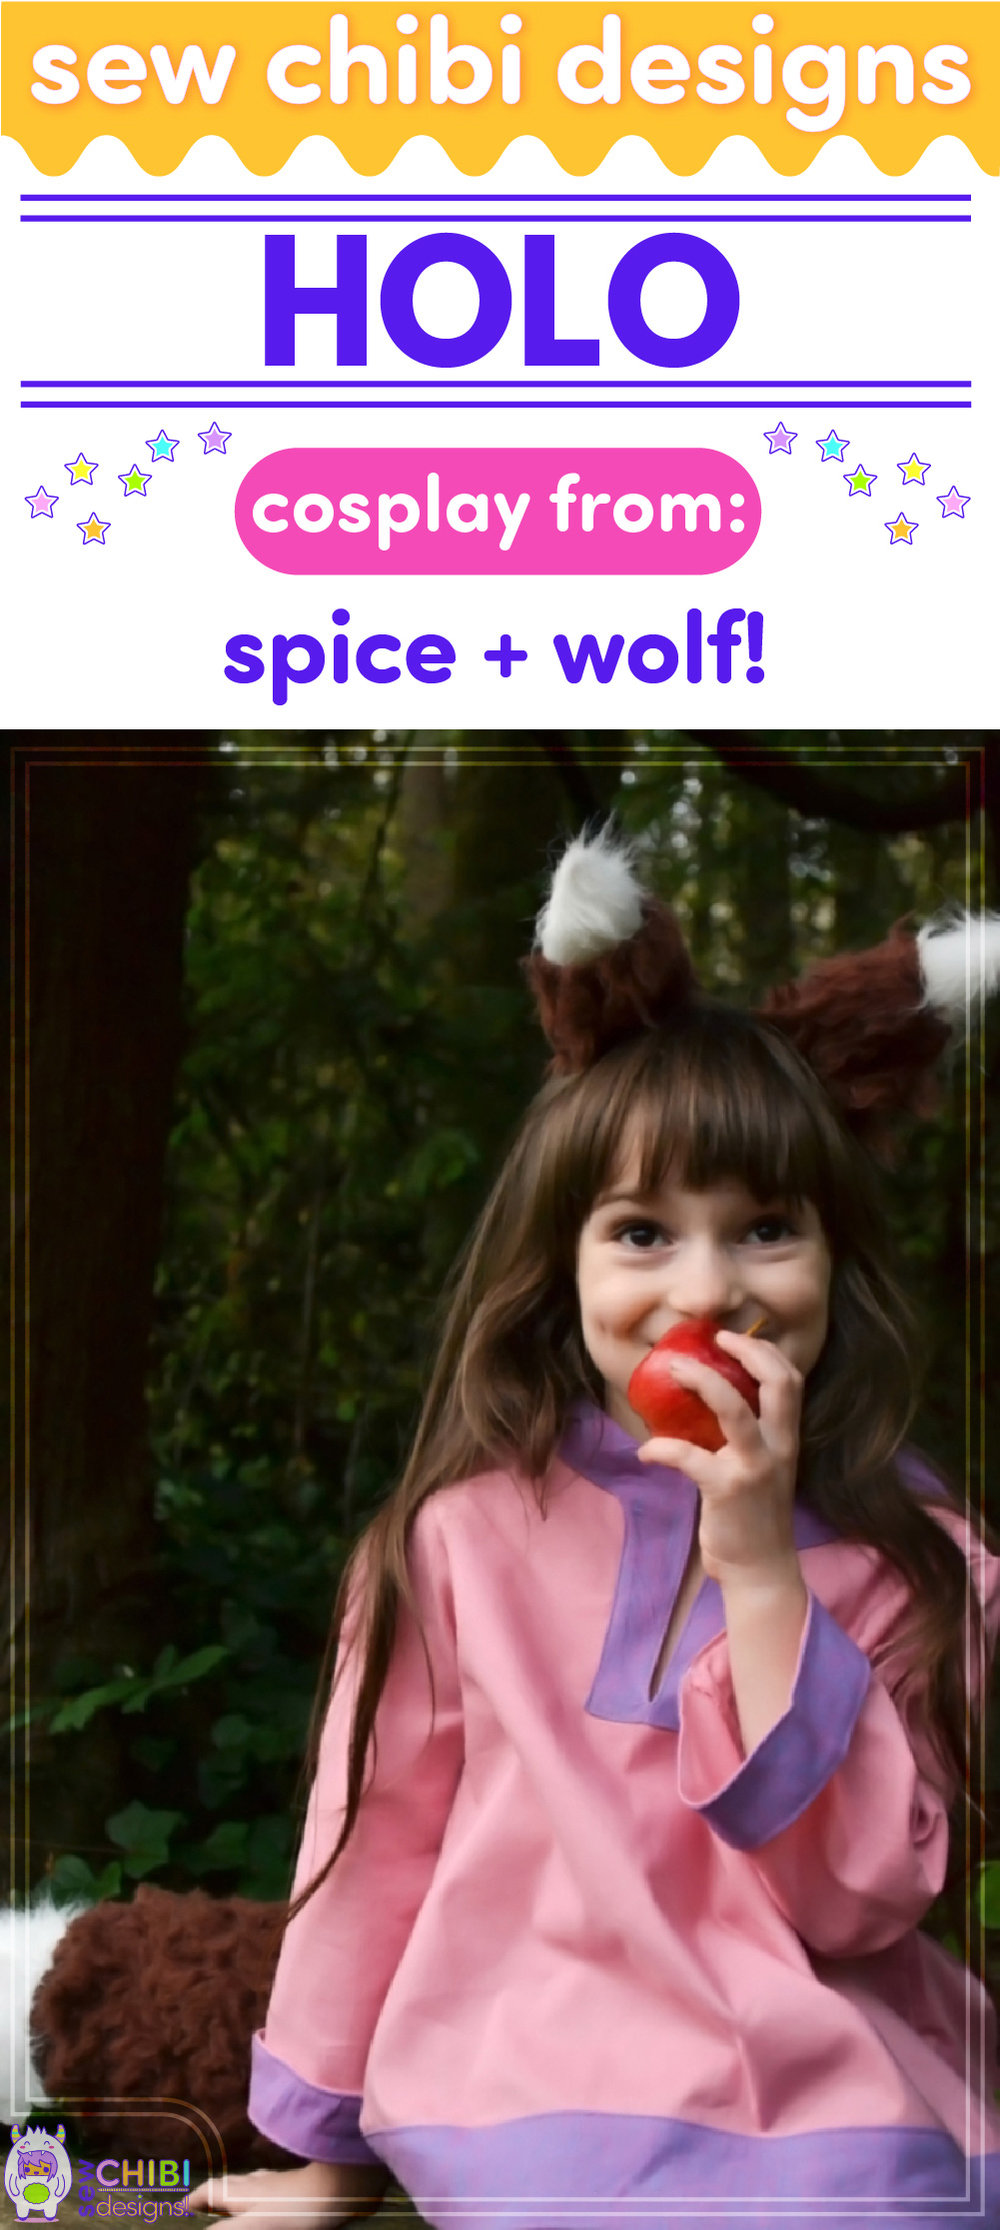 Holo chibi cosplay from Spice + Wolf anime sewn by Sew Chibi Designs for Sew Geeky